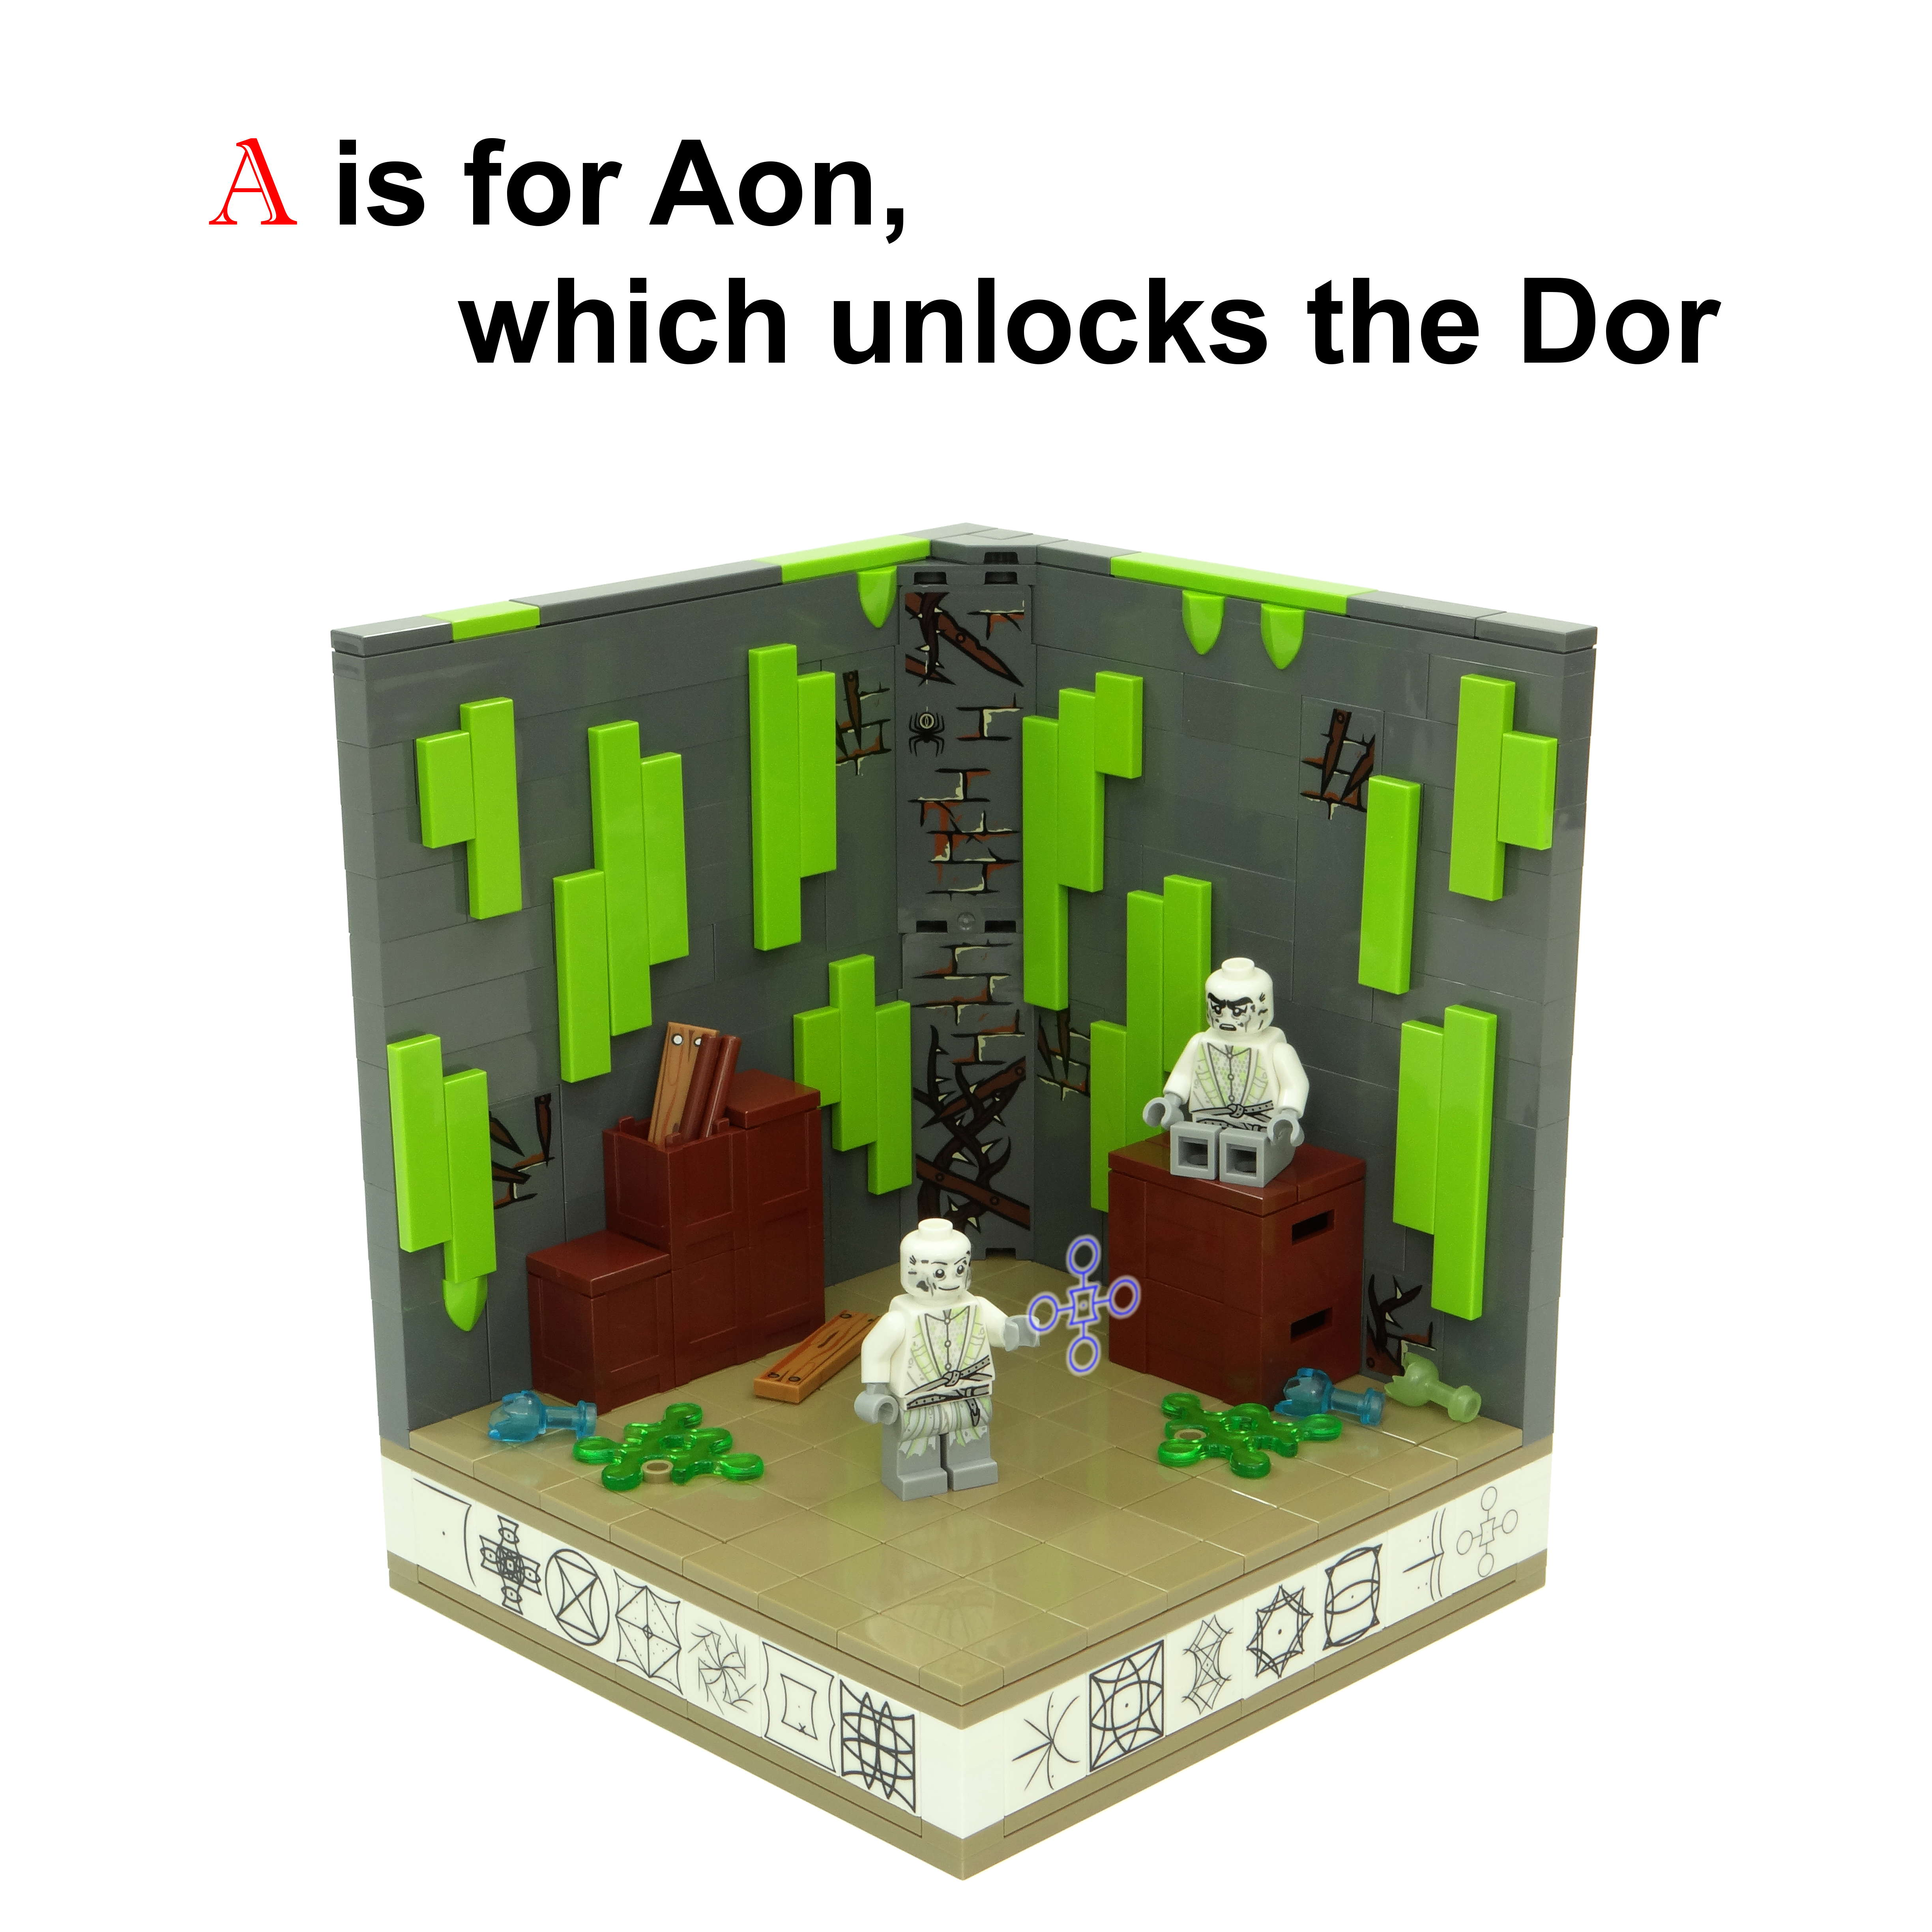 A-is-for-Aon